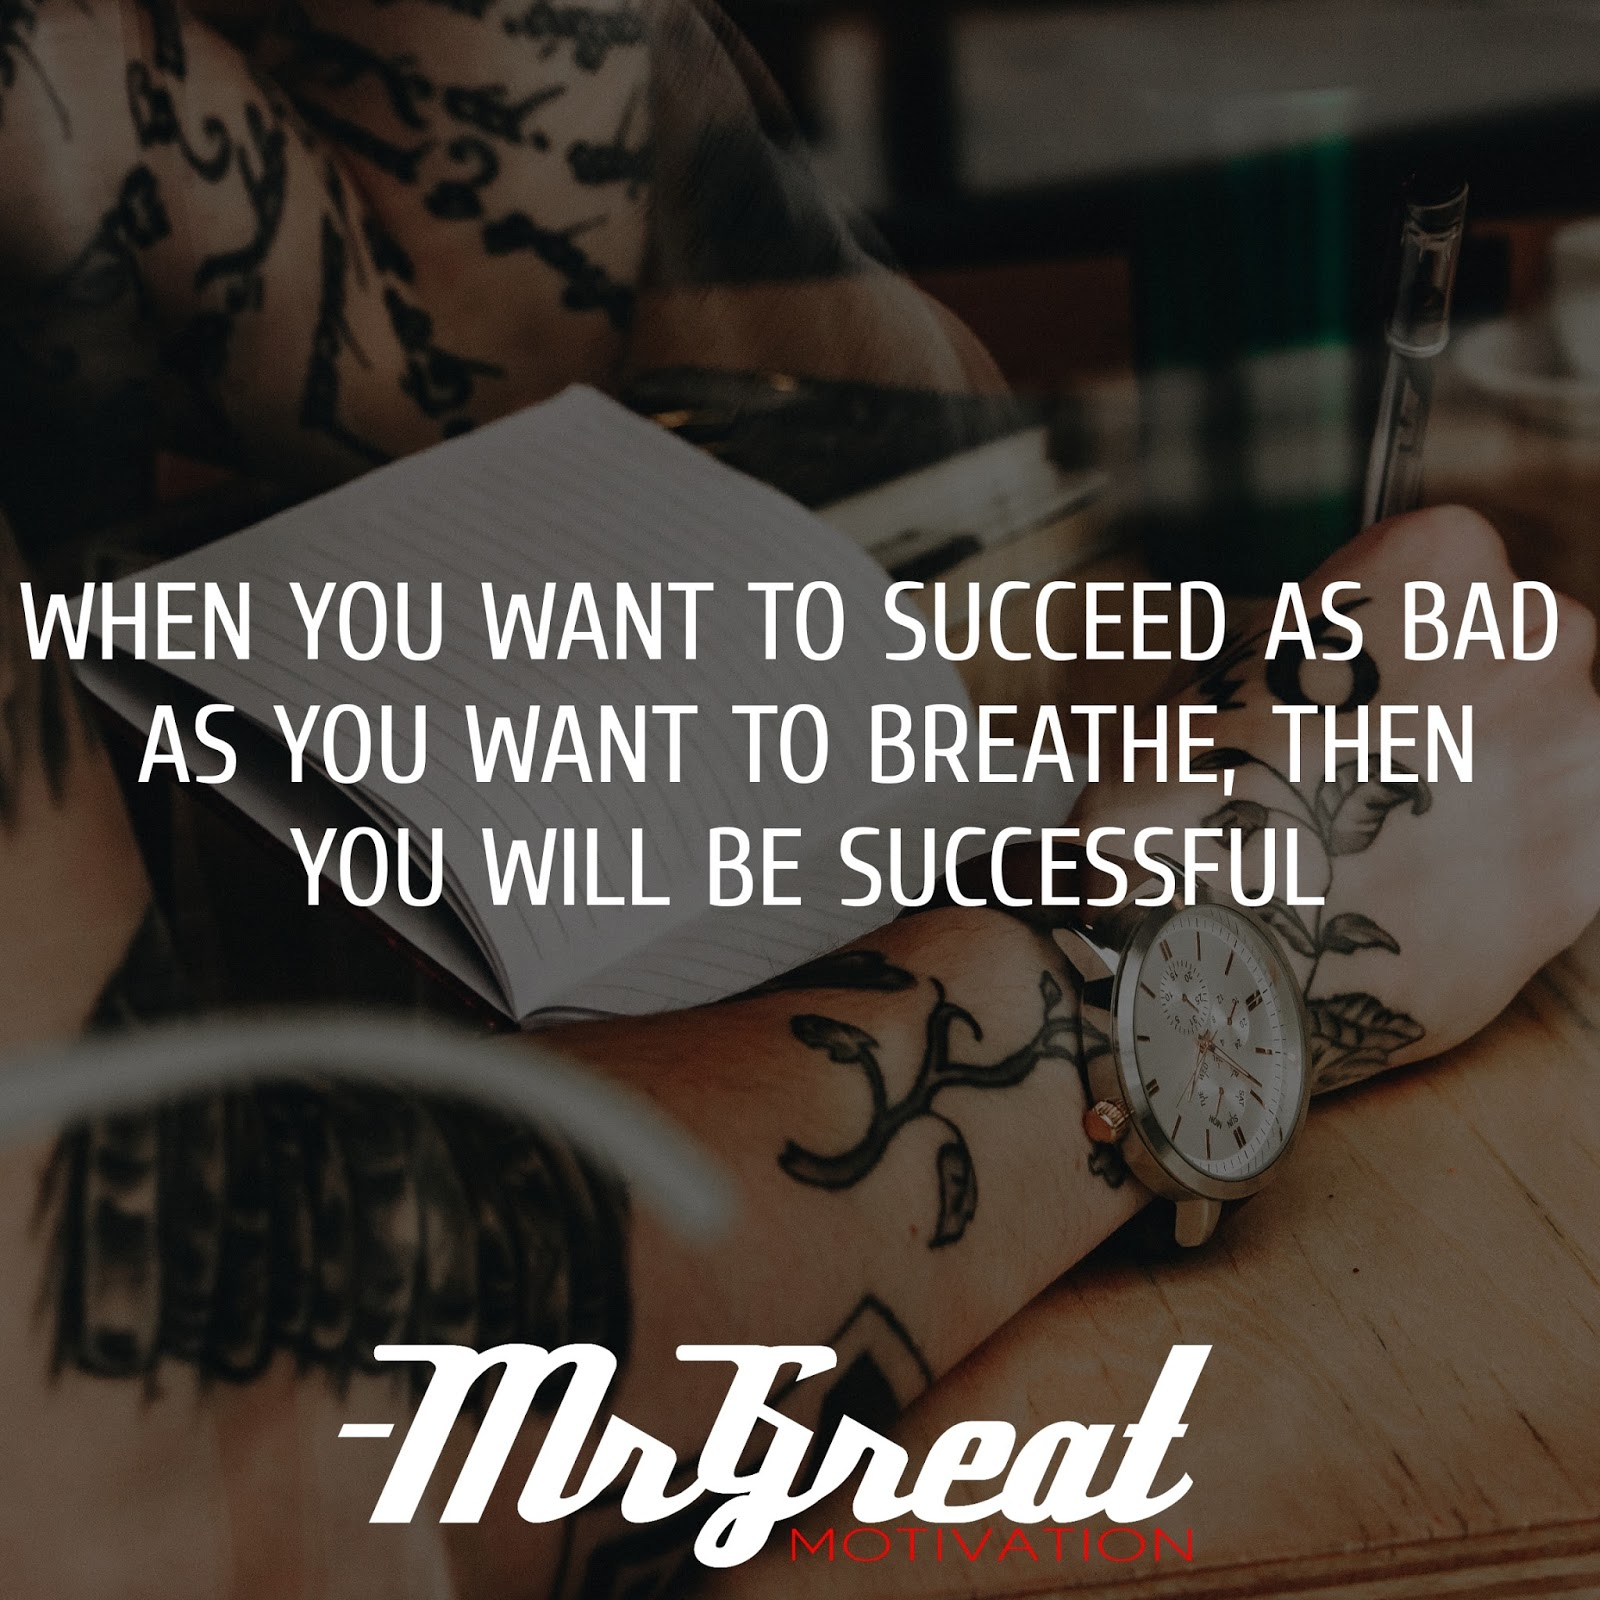 When you want to succeed as bad as you want to breathe, then you will be successful - Eric Thomas